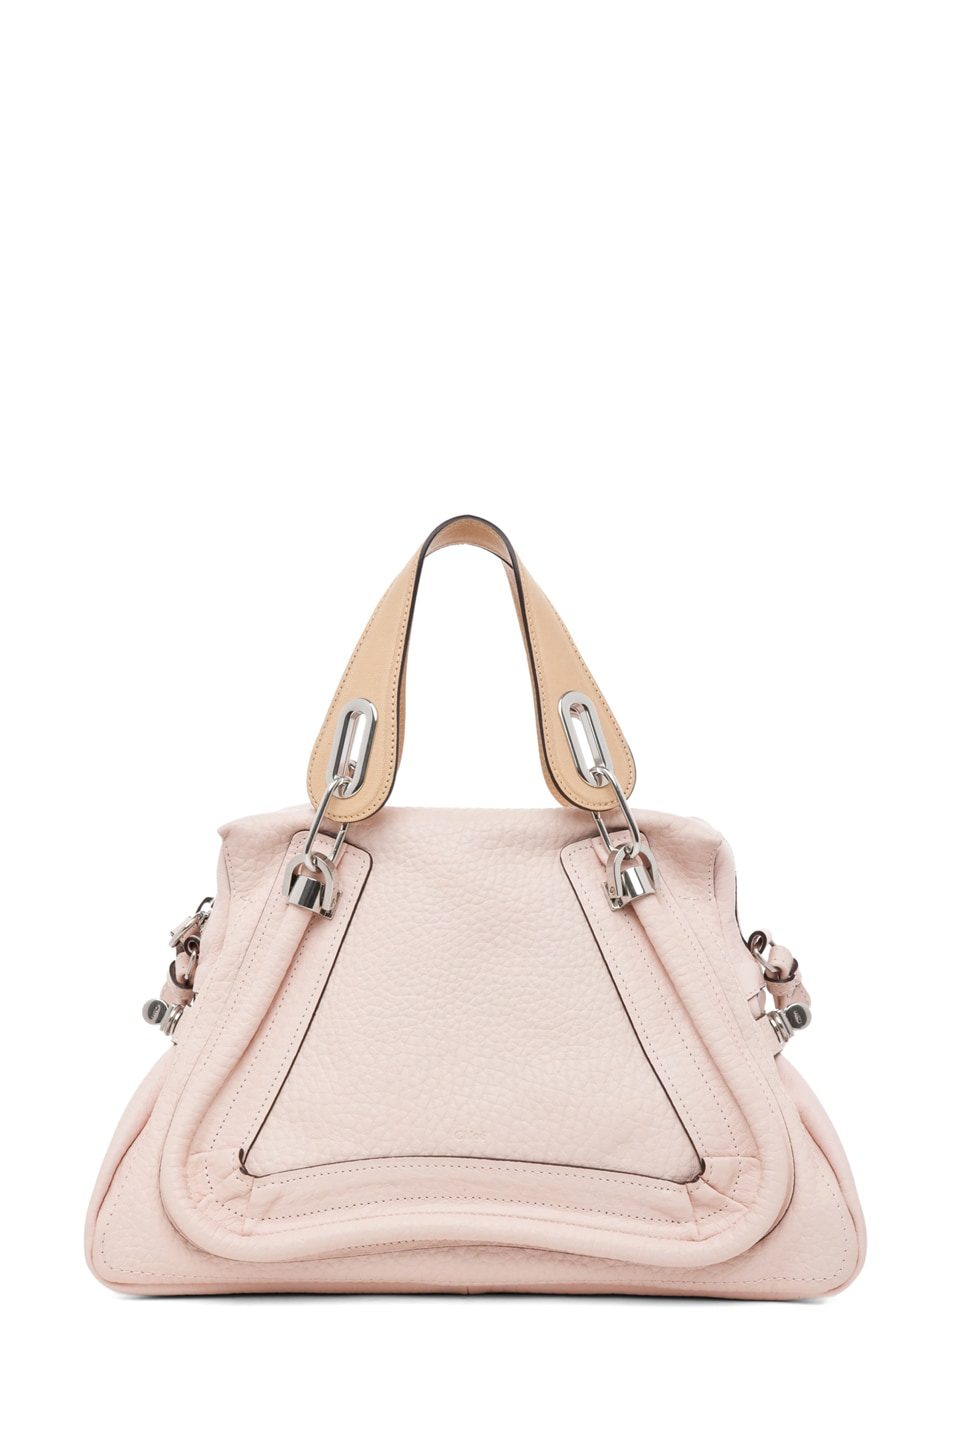 Image 1 of Chloe Paraty Medium Shoulder Bag in Bliss Pink